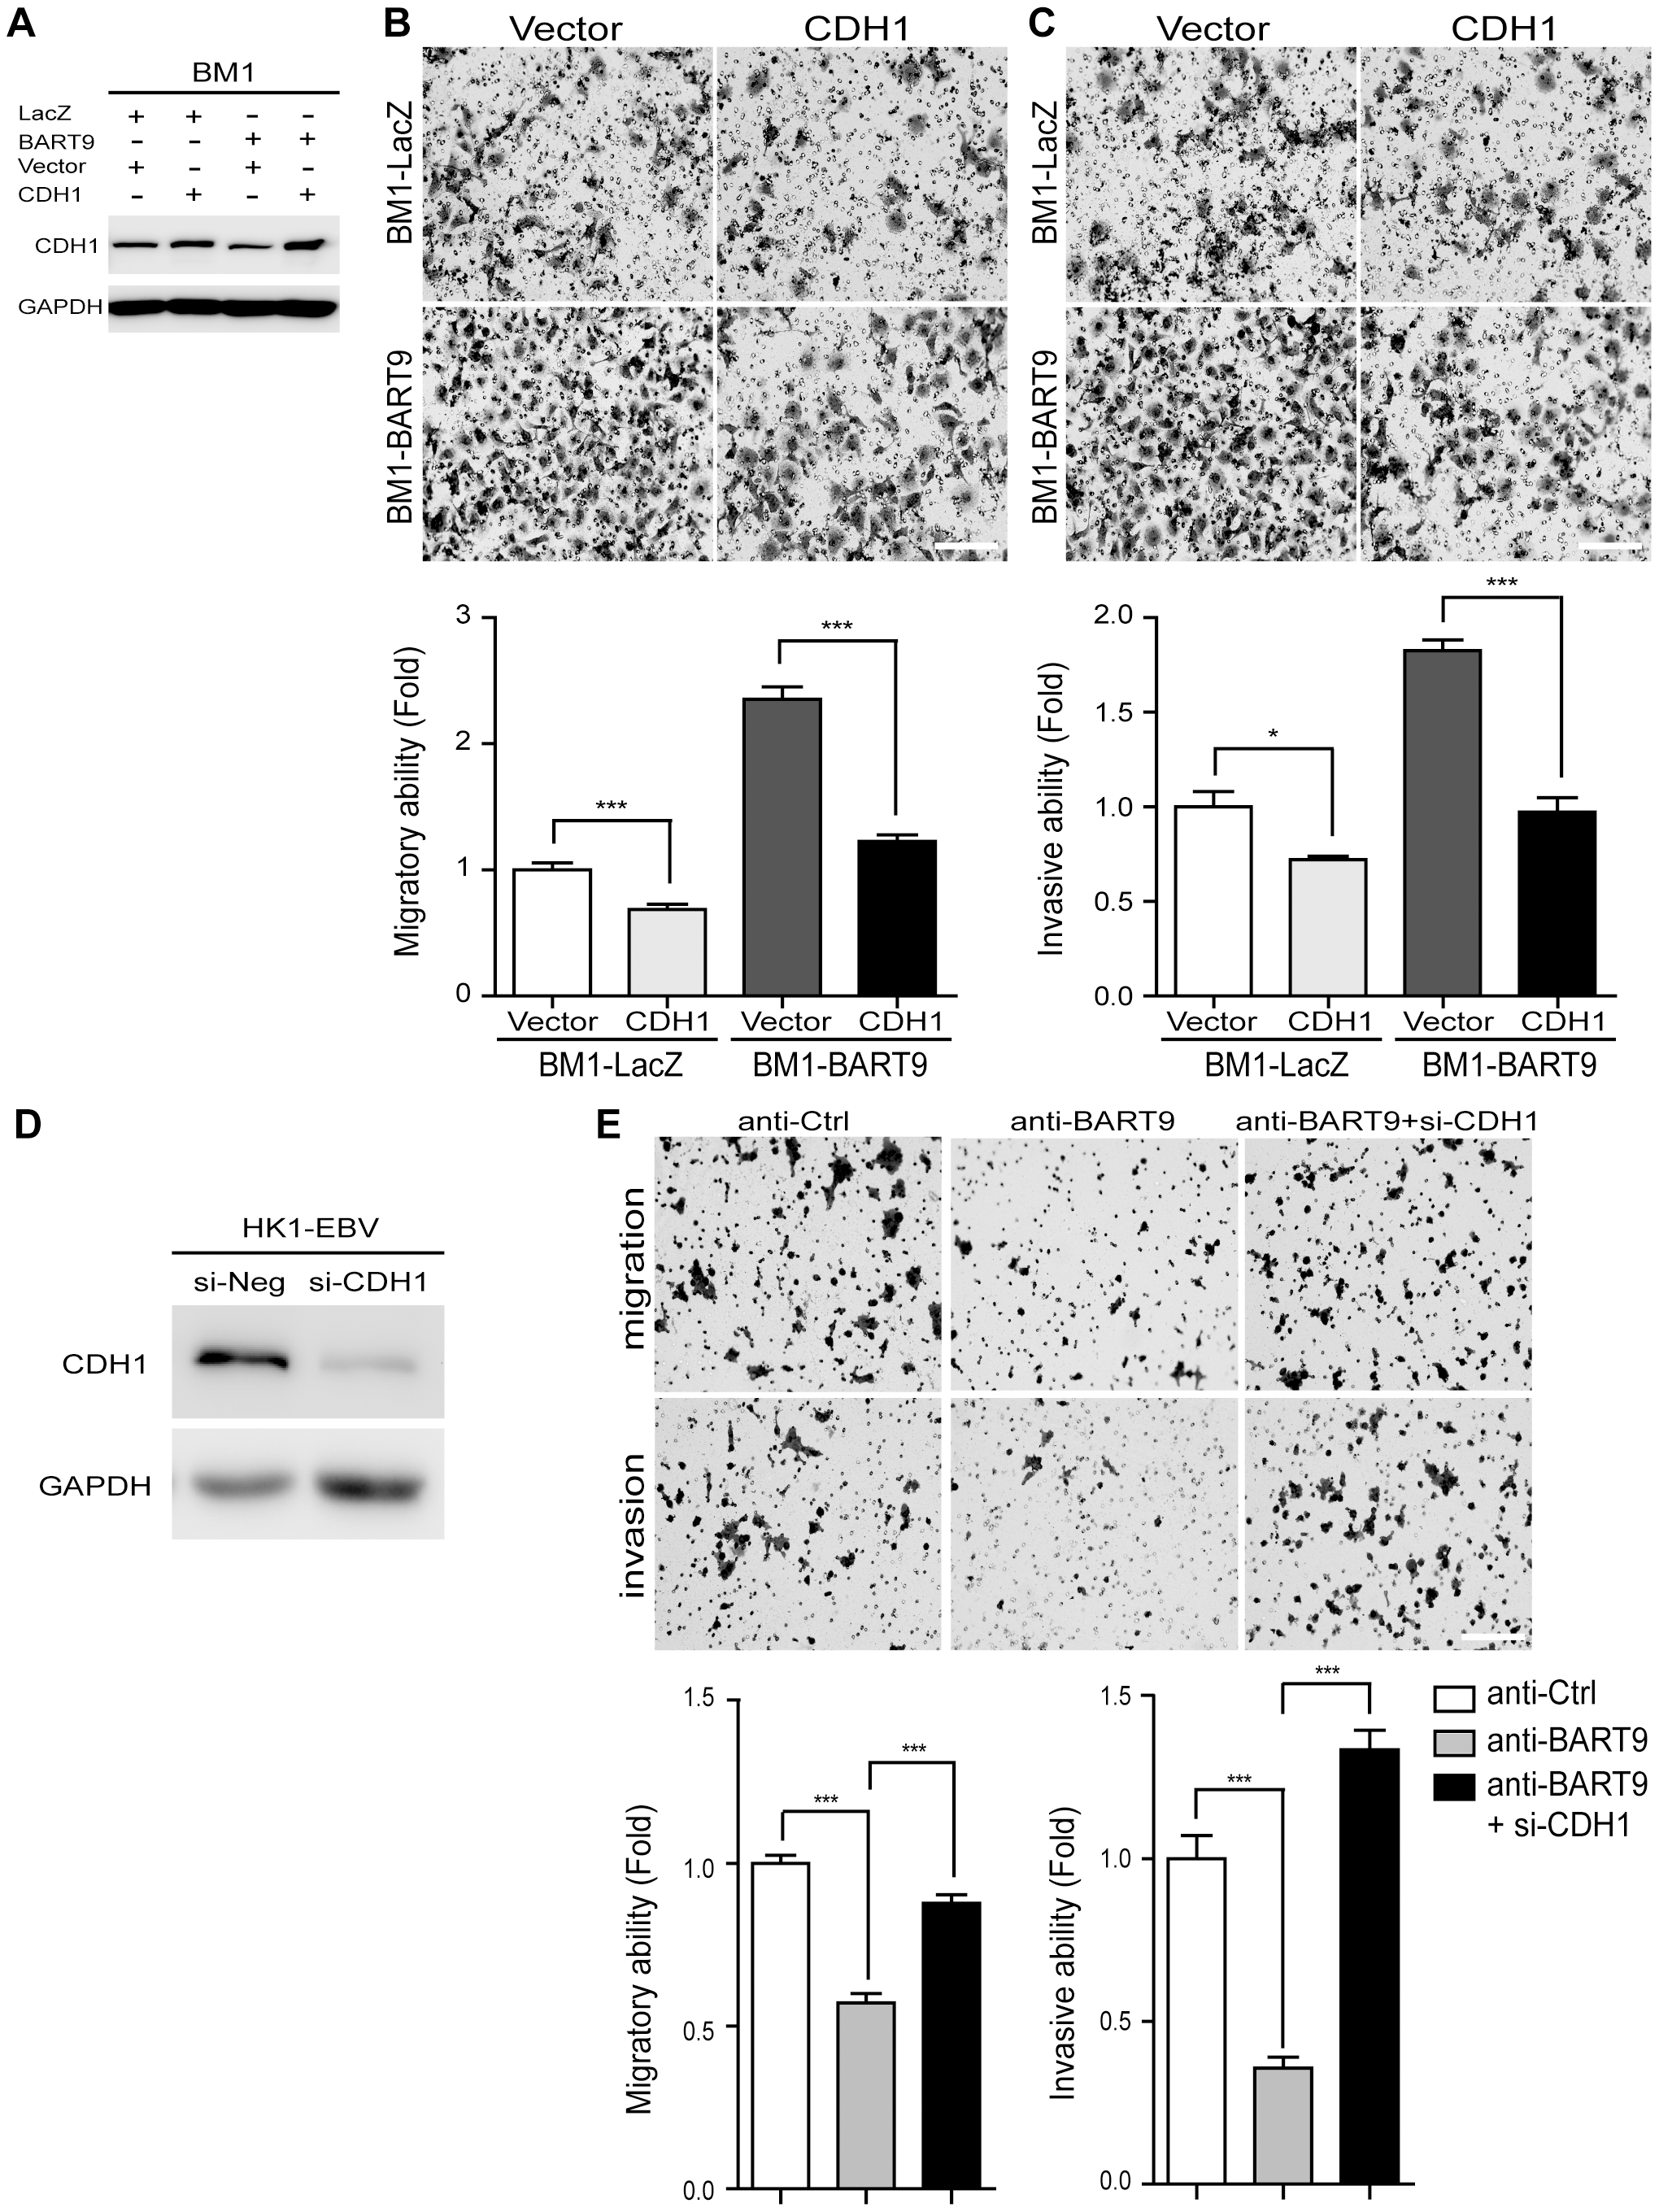 E-cadherin plays a pivotal role in miR-BART9-mediated migration and invasion in NPC cells.